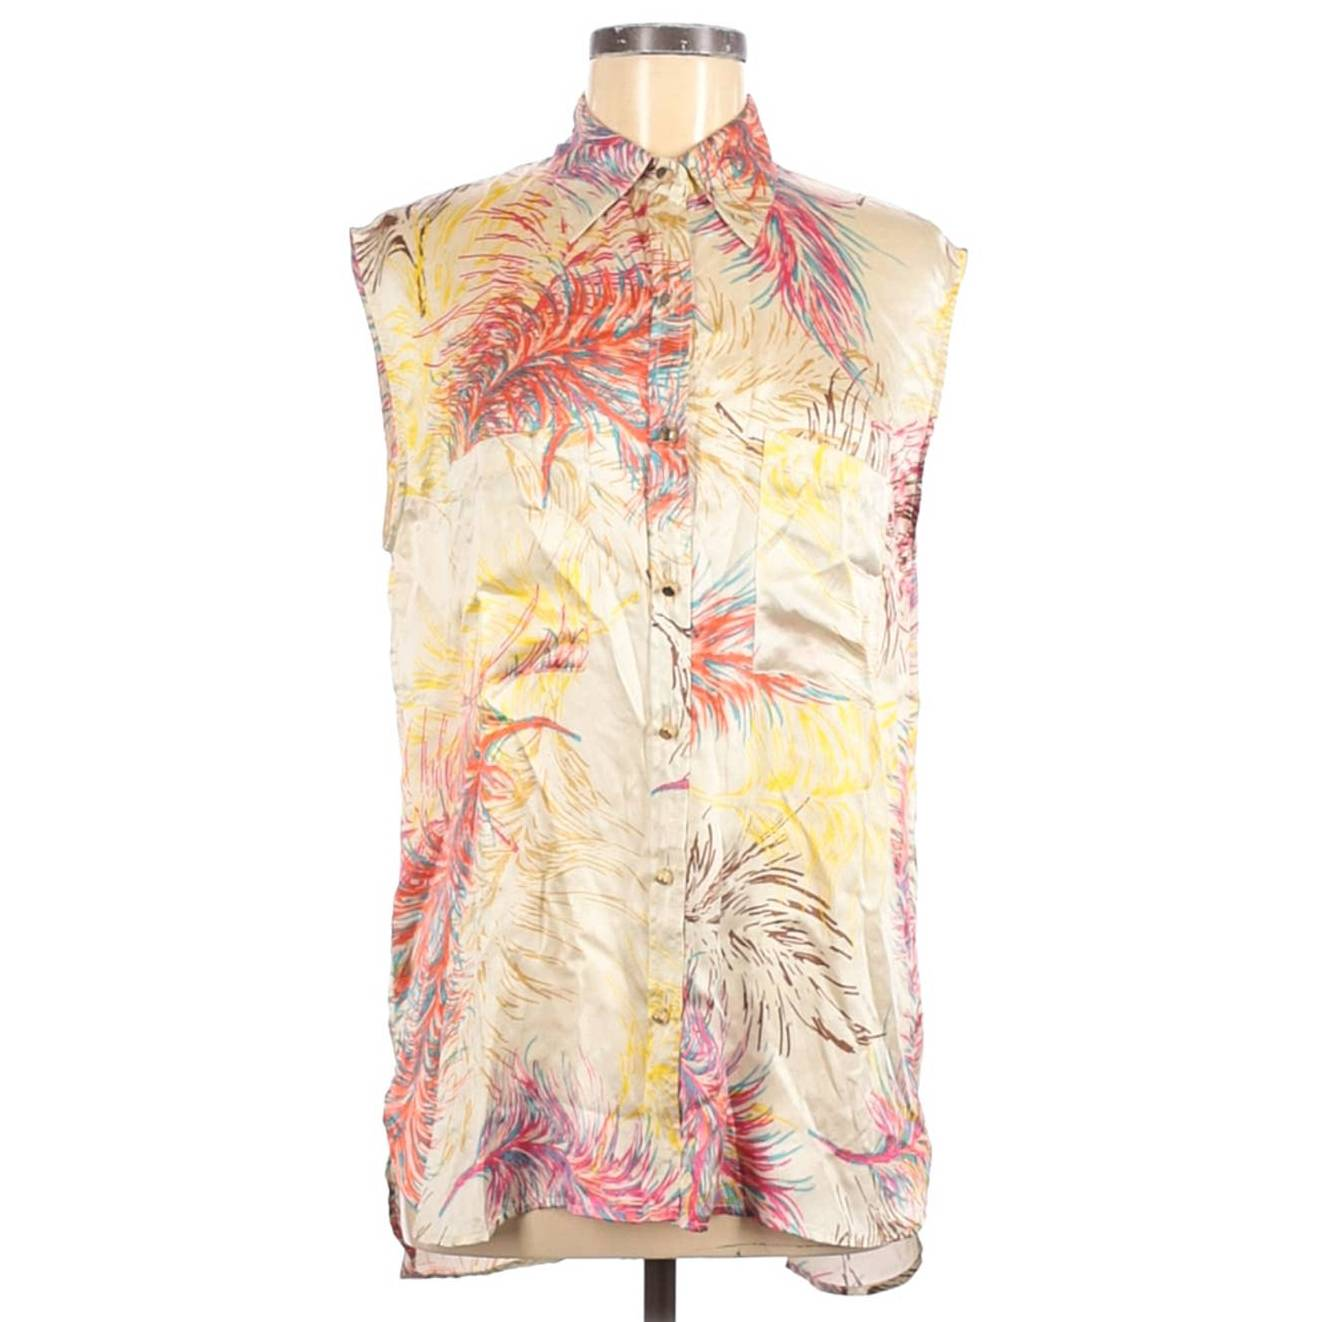 cAbi 100% M silk blouse button floral